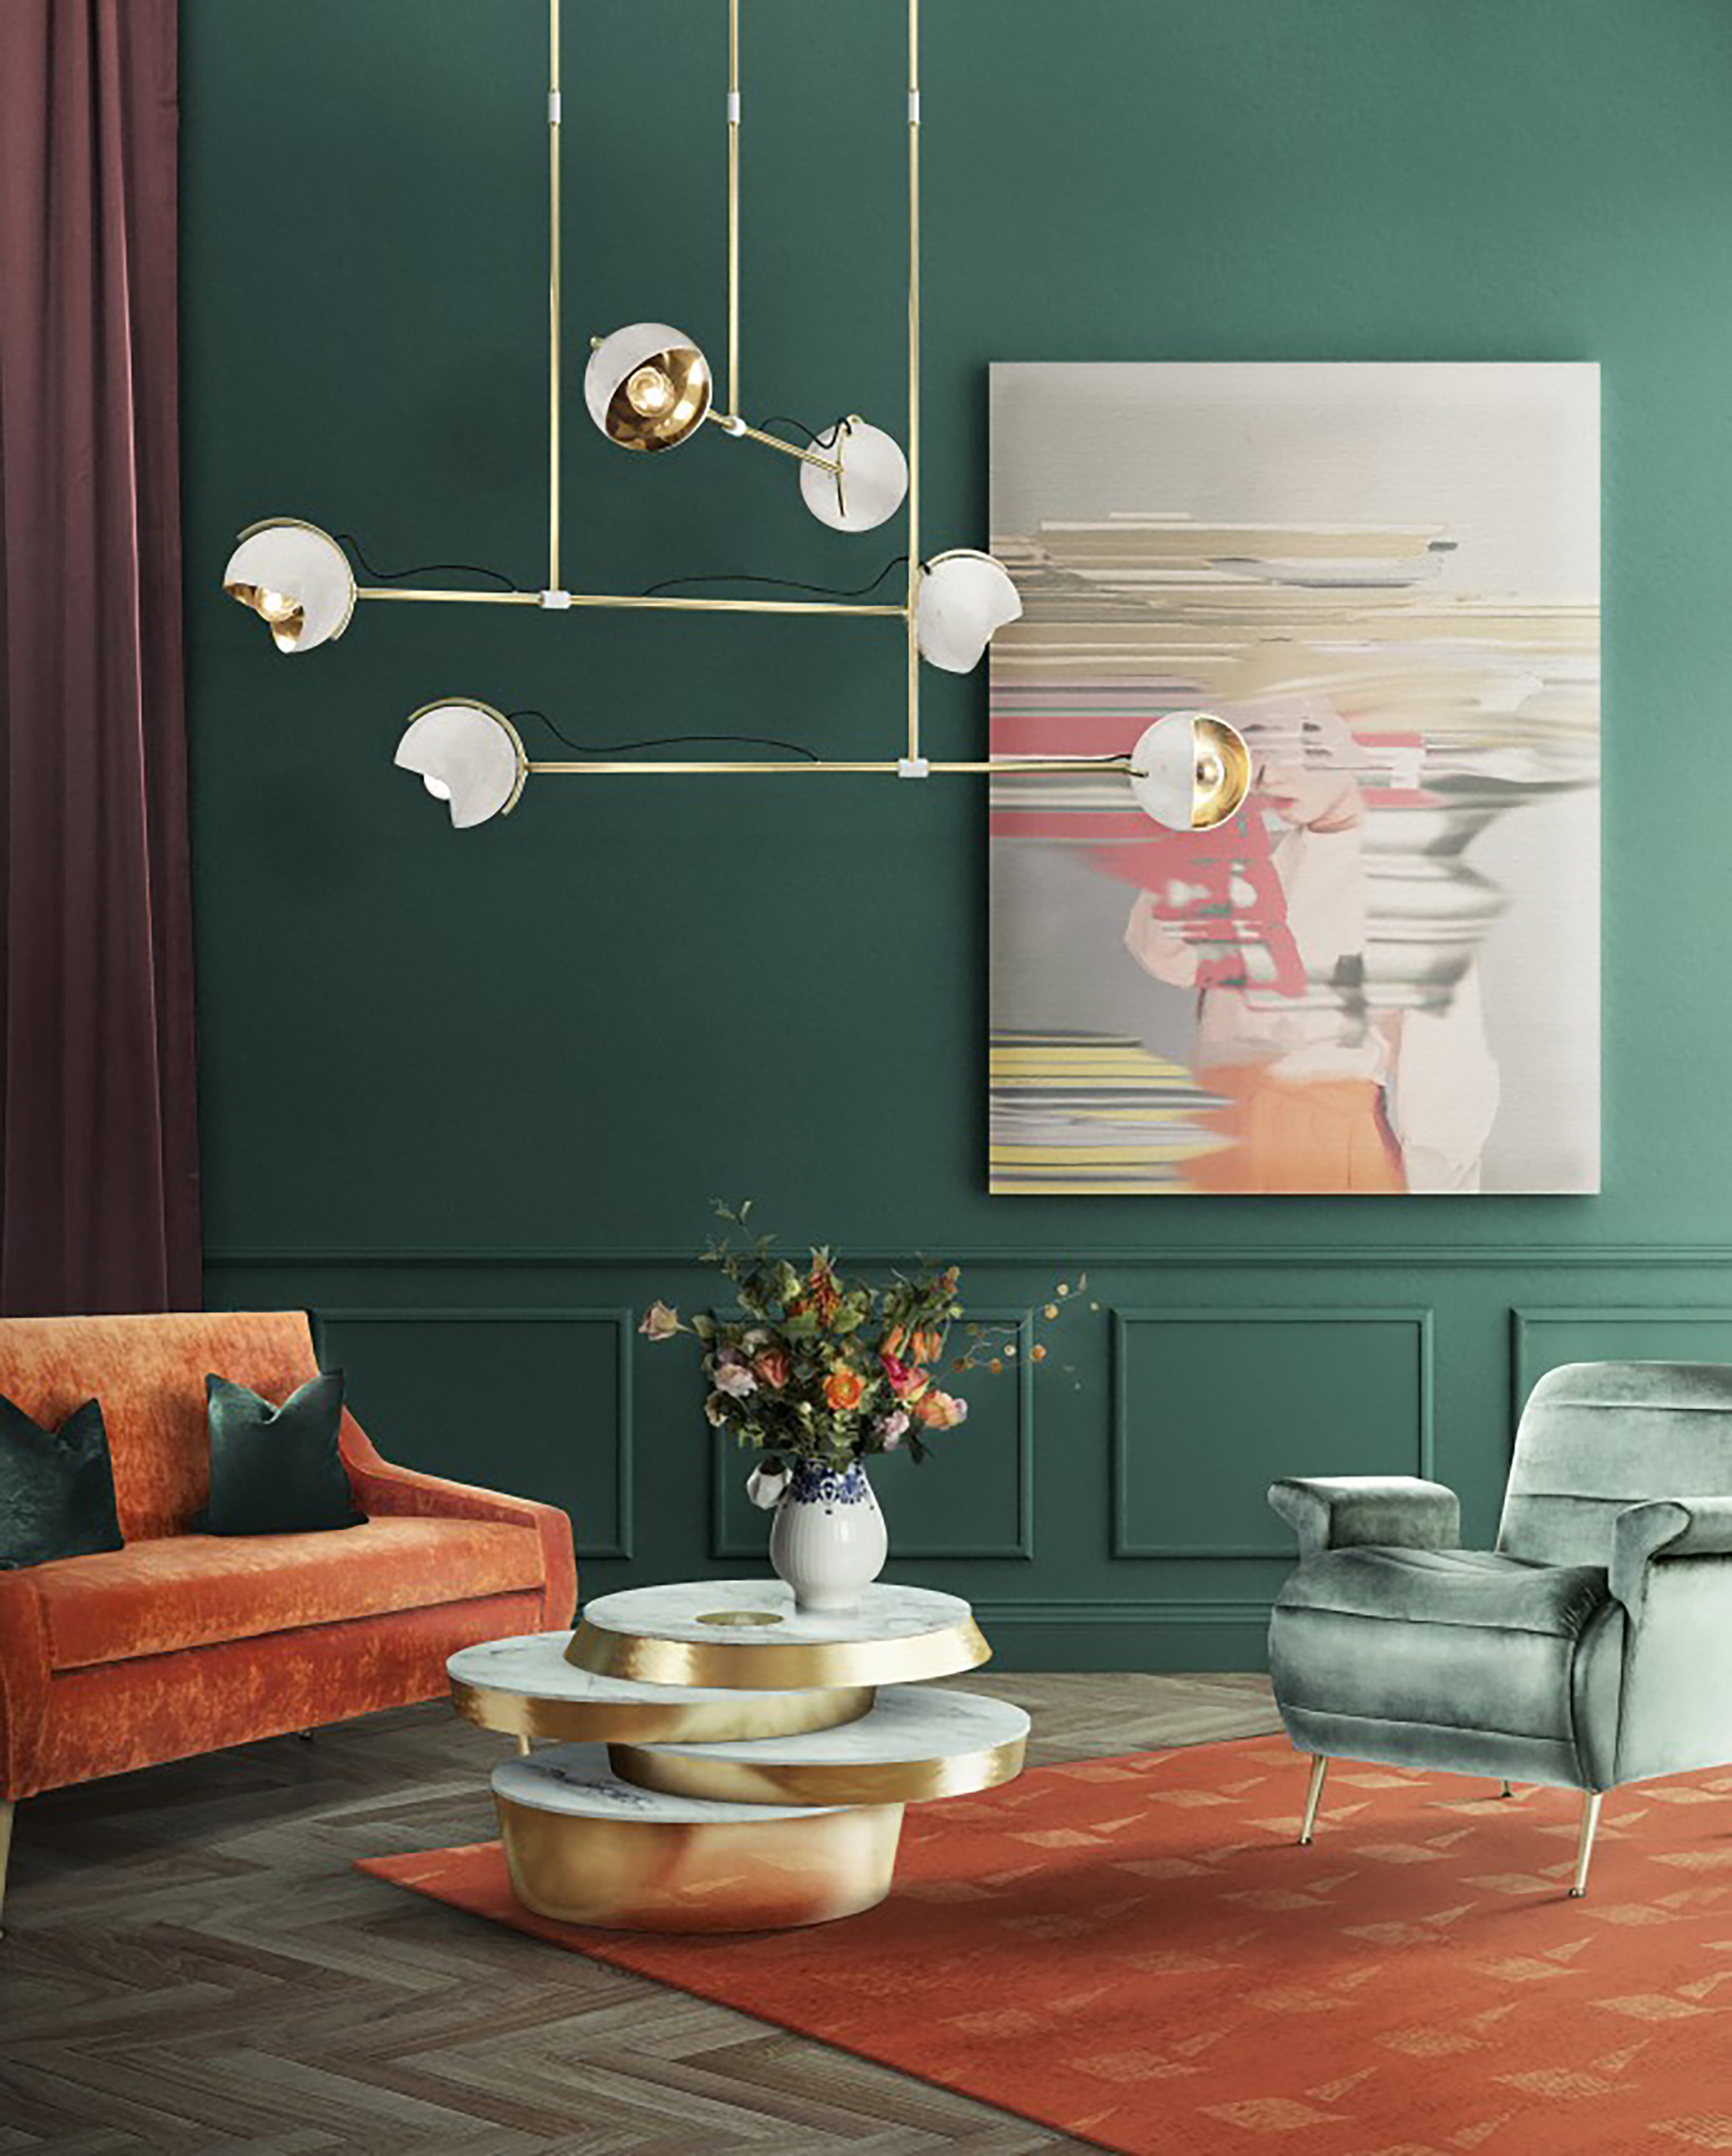 green living room designs 6 Green Living Room Designs That Are Going To Blow Your Mind 6 Green Living Room Designs That Are Going To Blow Your Mind 4